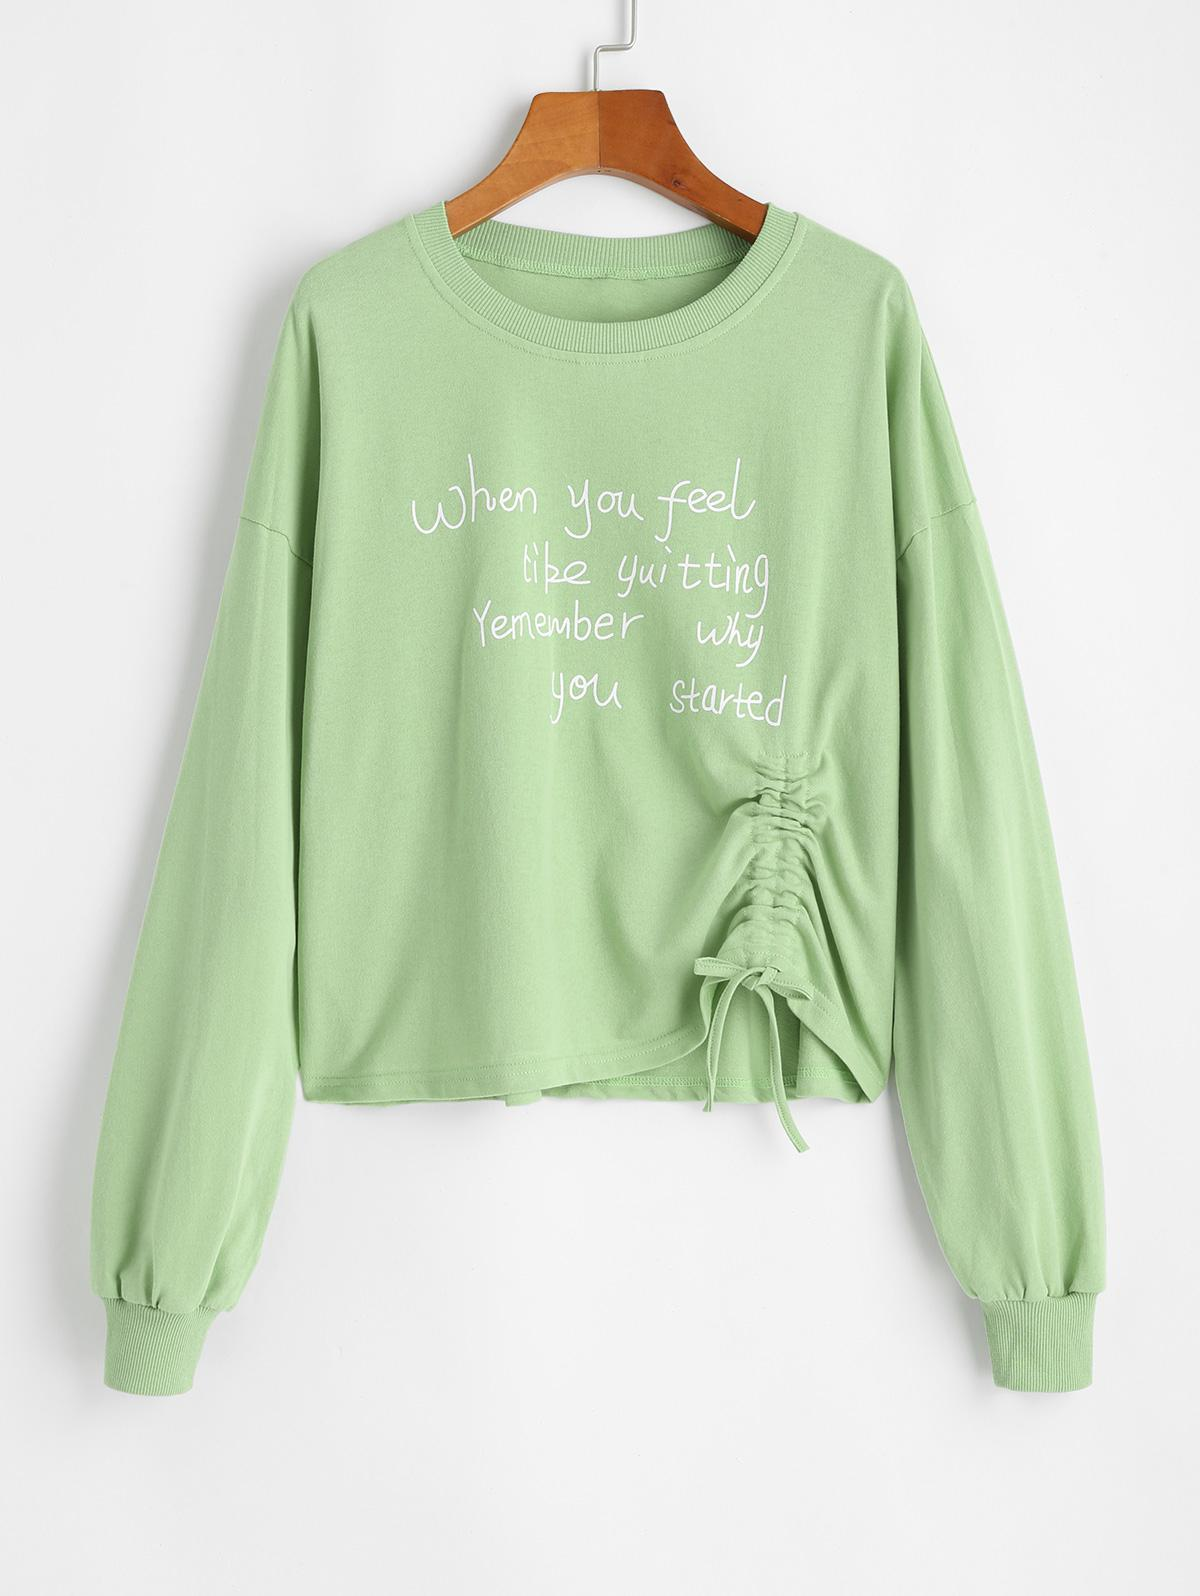 Cinched Slogan Graphic Pullover Sweatshirt